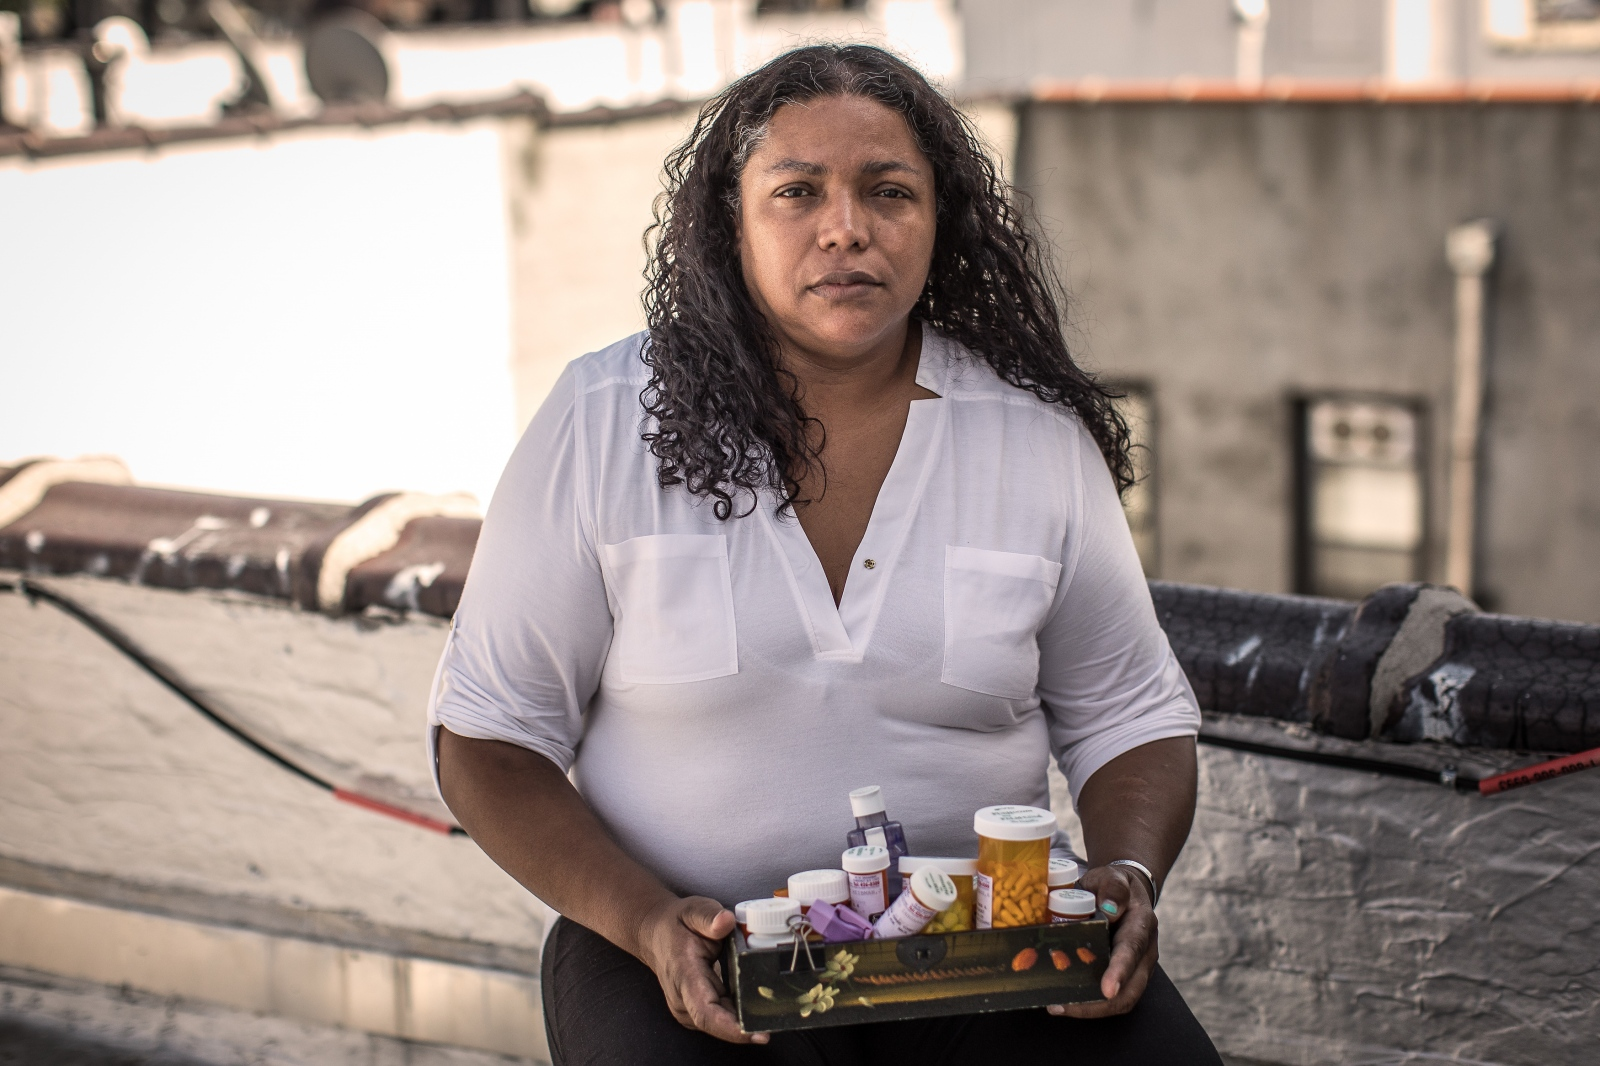 Rubiela Arias, 51, Colombian, worked for eight months cleaning near Ground Zero. She suffers from sinusitis, asthma, anxiety, and dizziness. She has long advocated for the rights of those affected by 9/11.